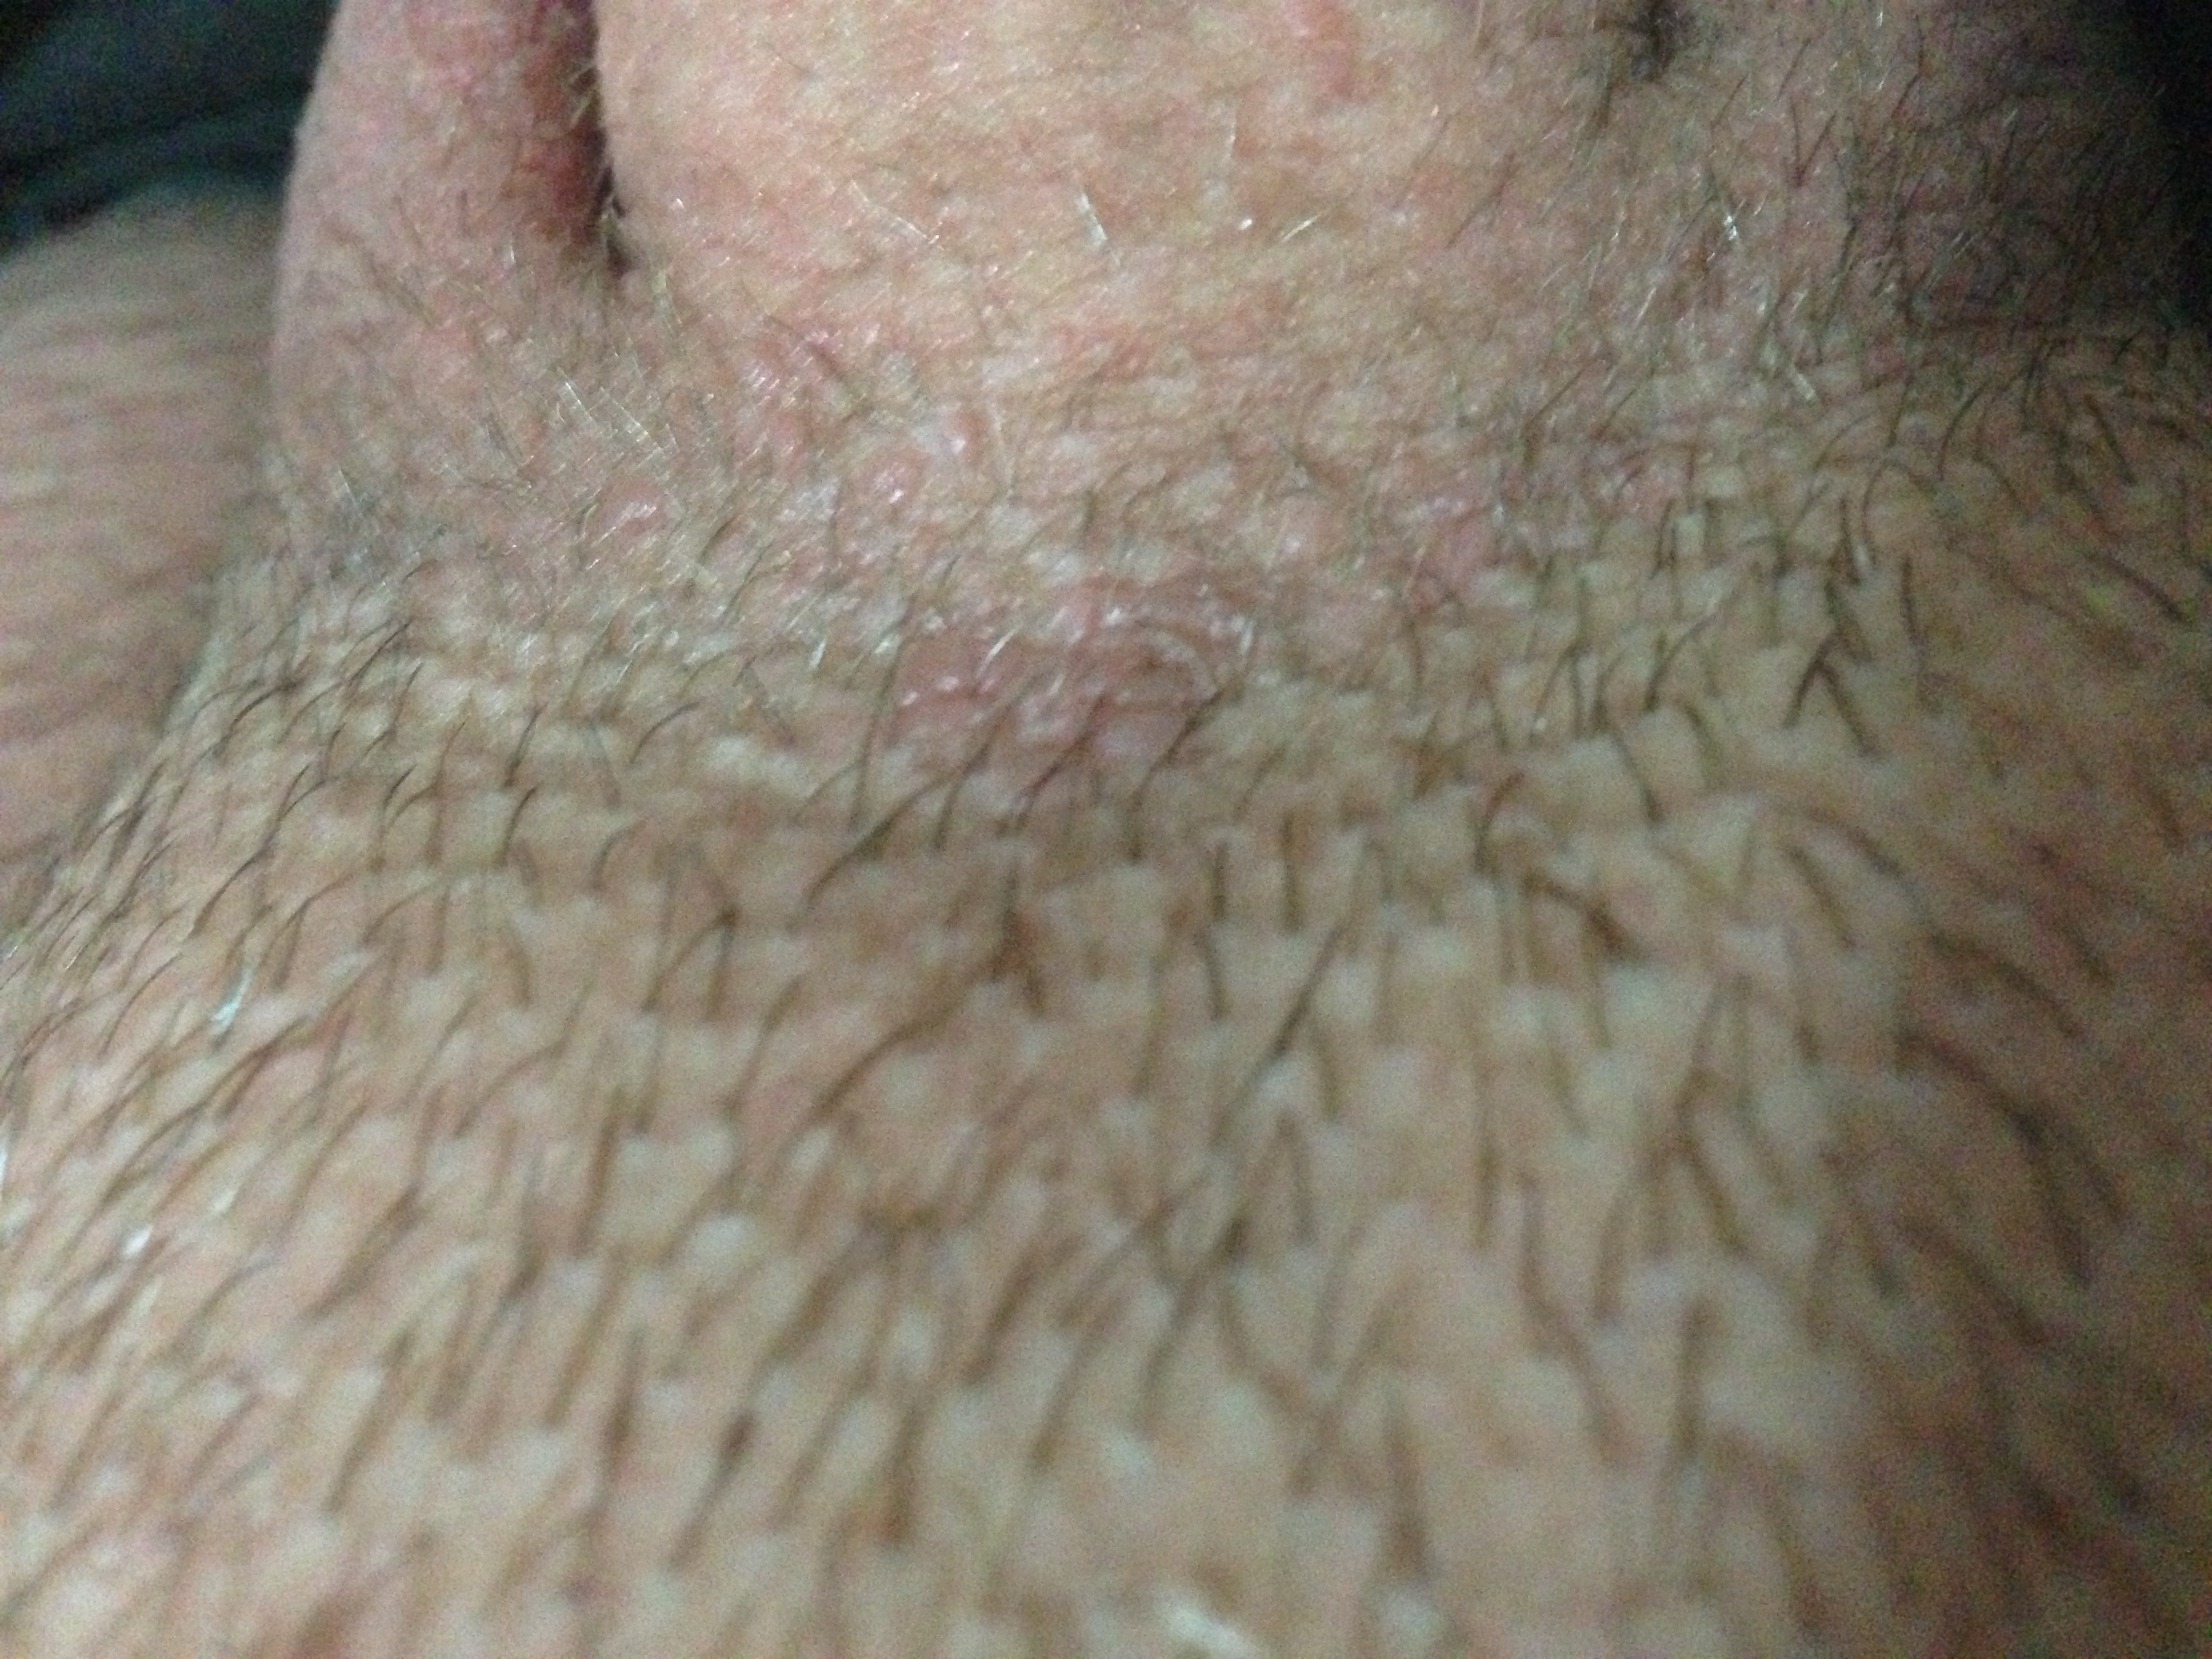 Bumps At The Base Of Penis 94